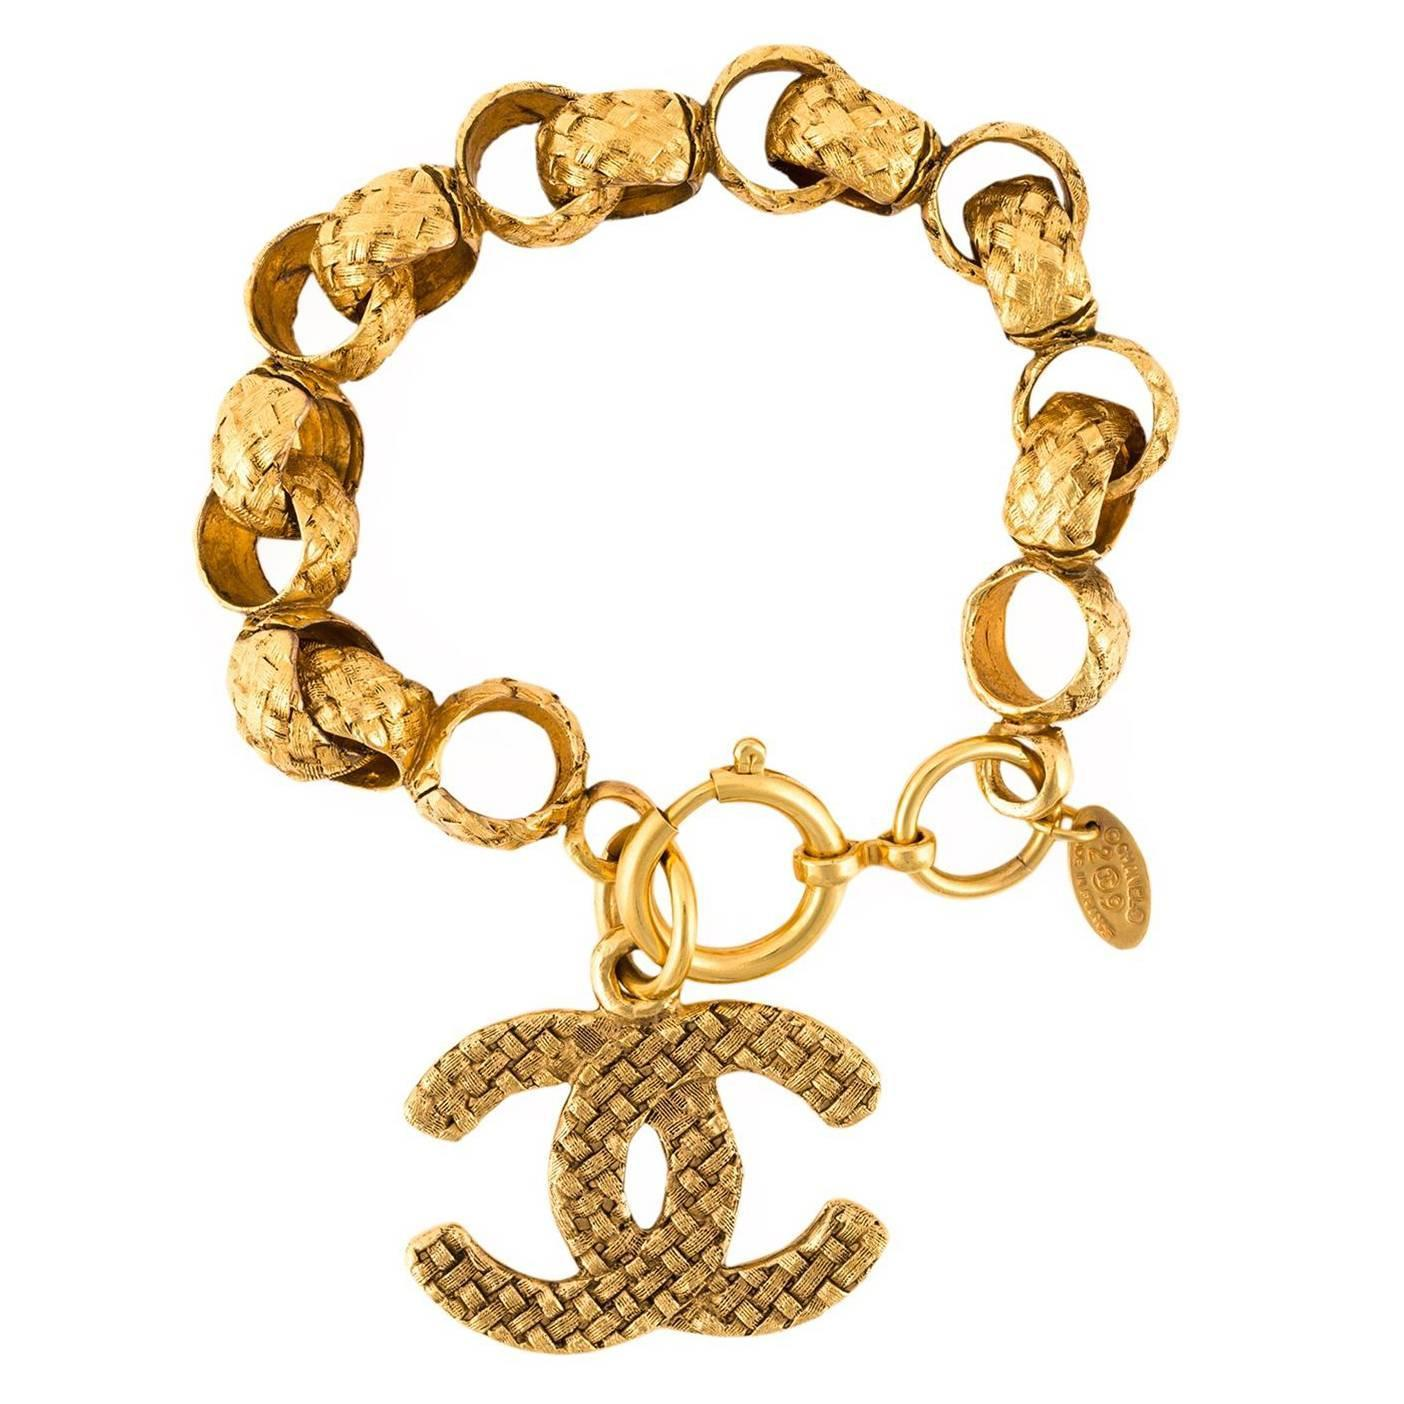 and gorgeous chanel logo bracelet c 1989 at 1stdibs